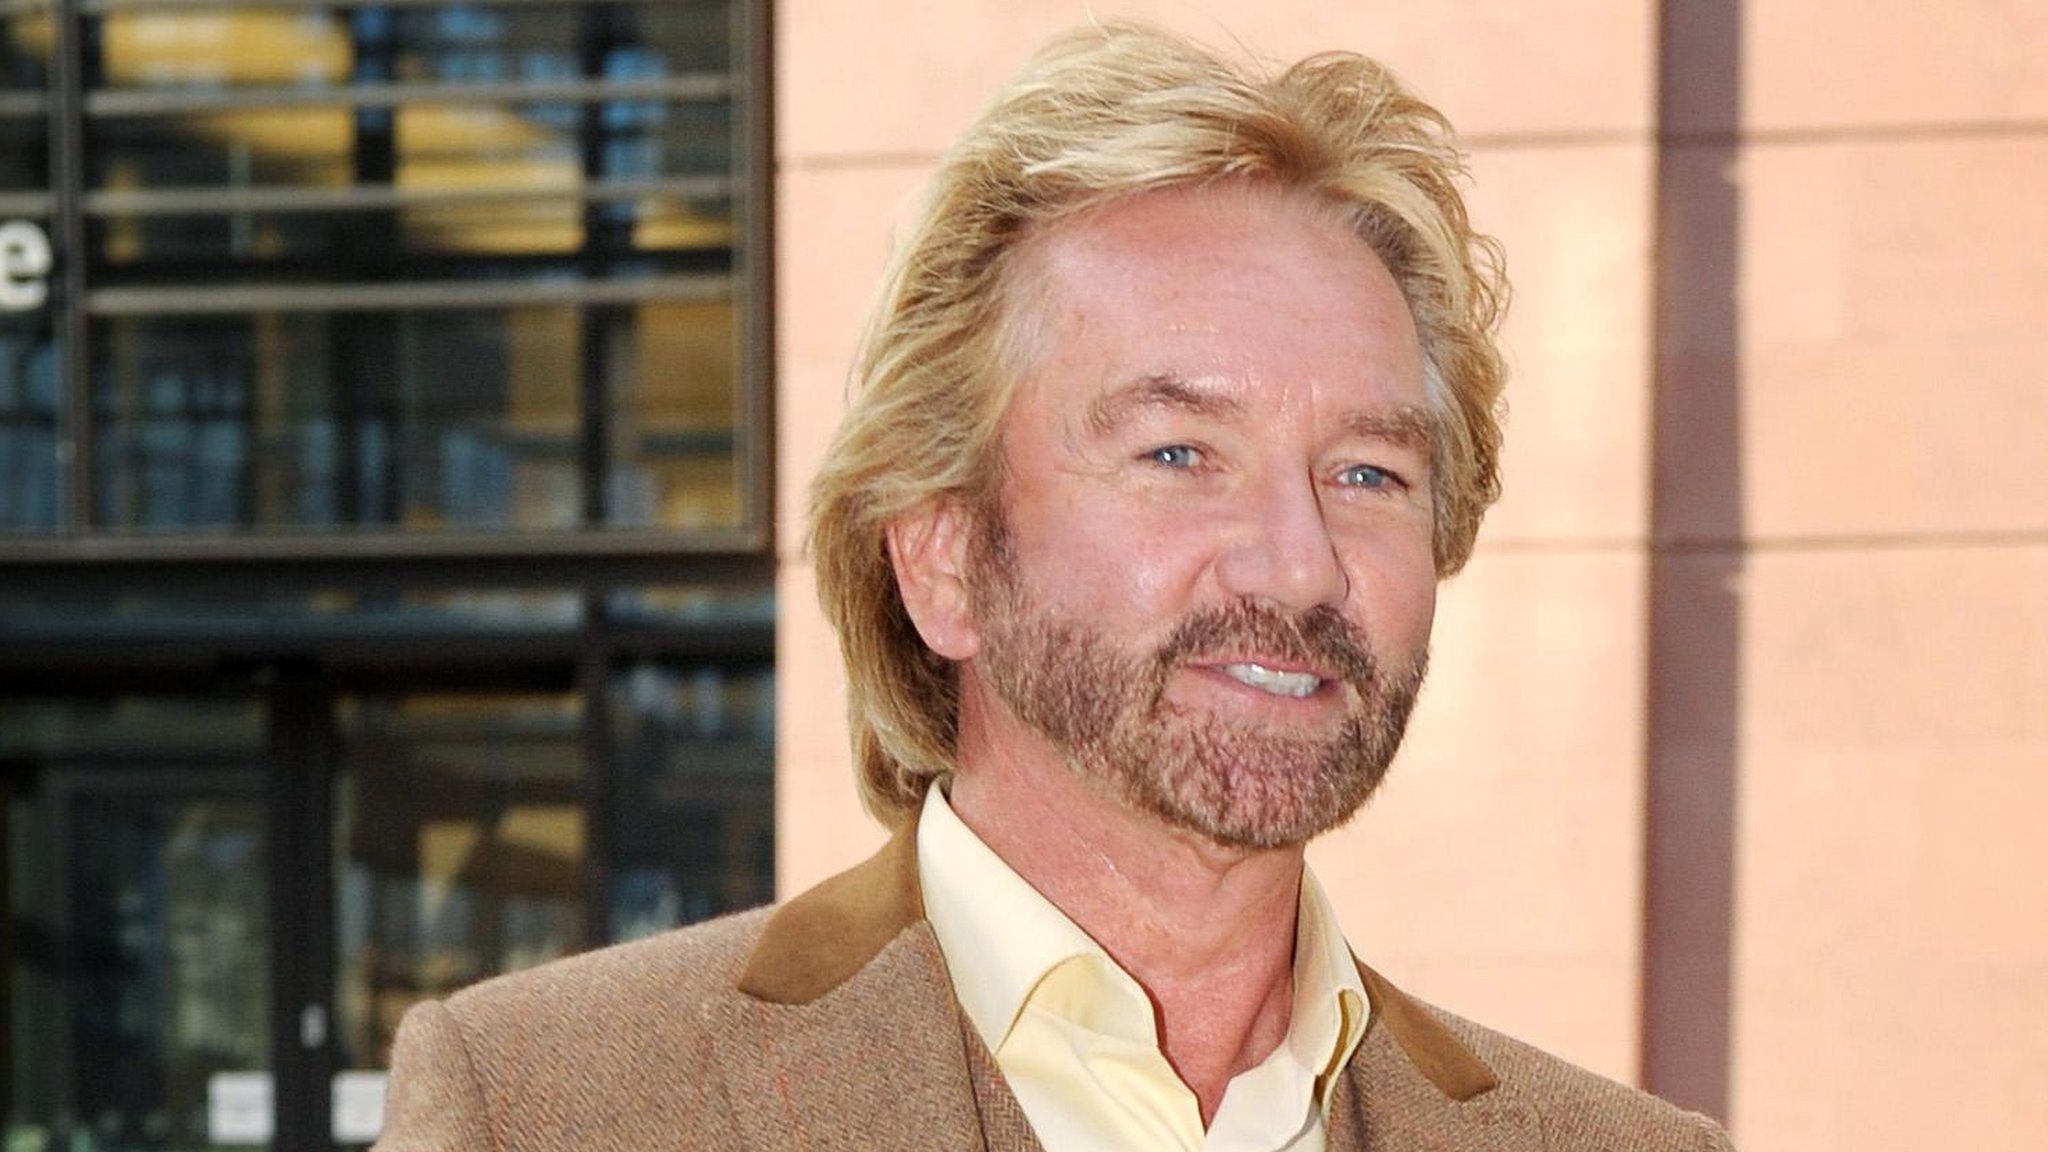 Noel Edmonds seeks £50m damages for HBOS fraud